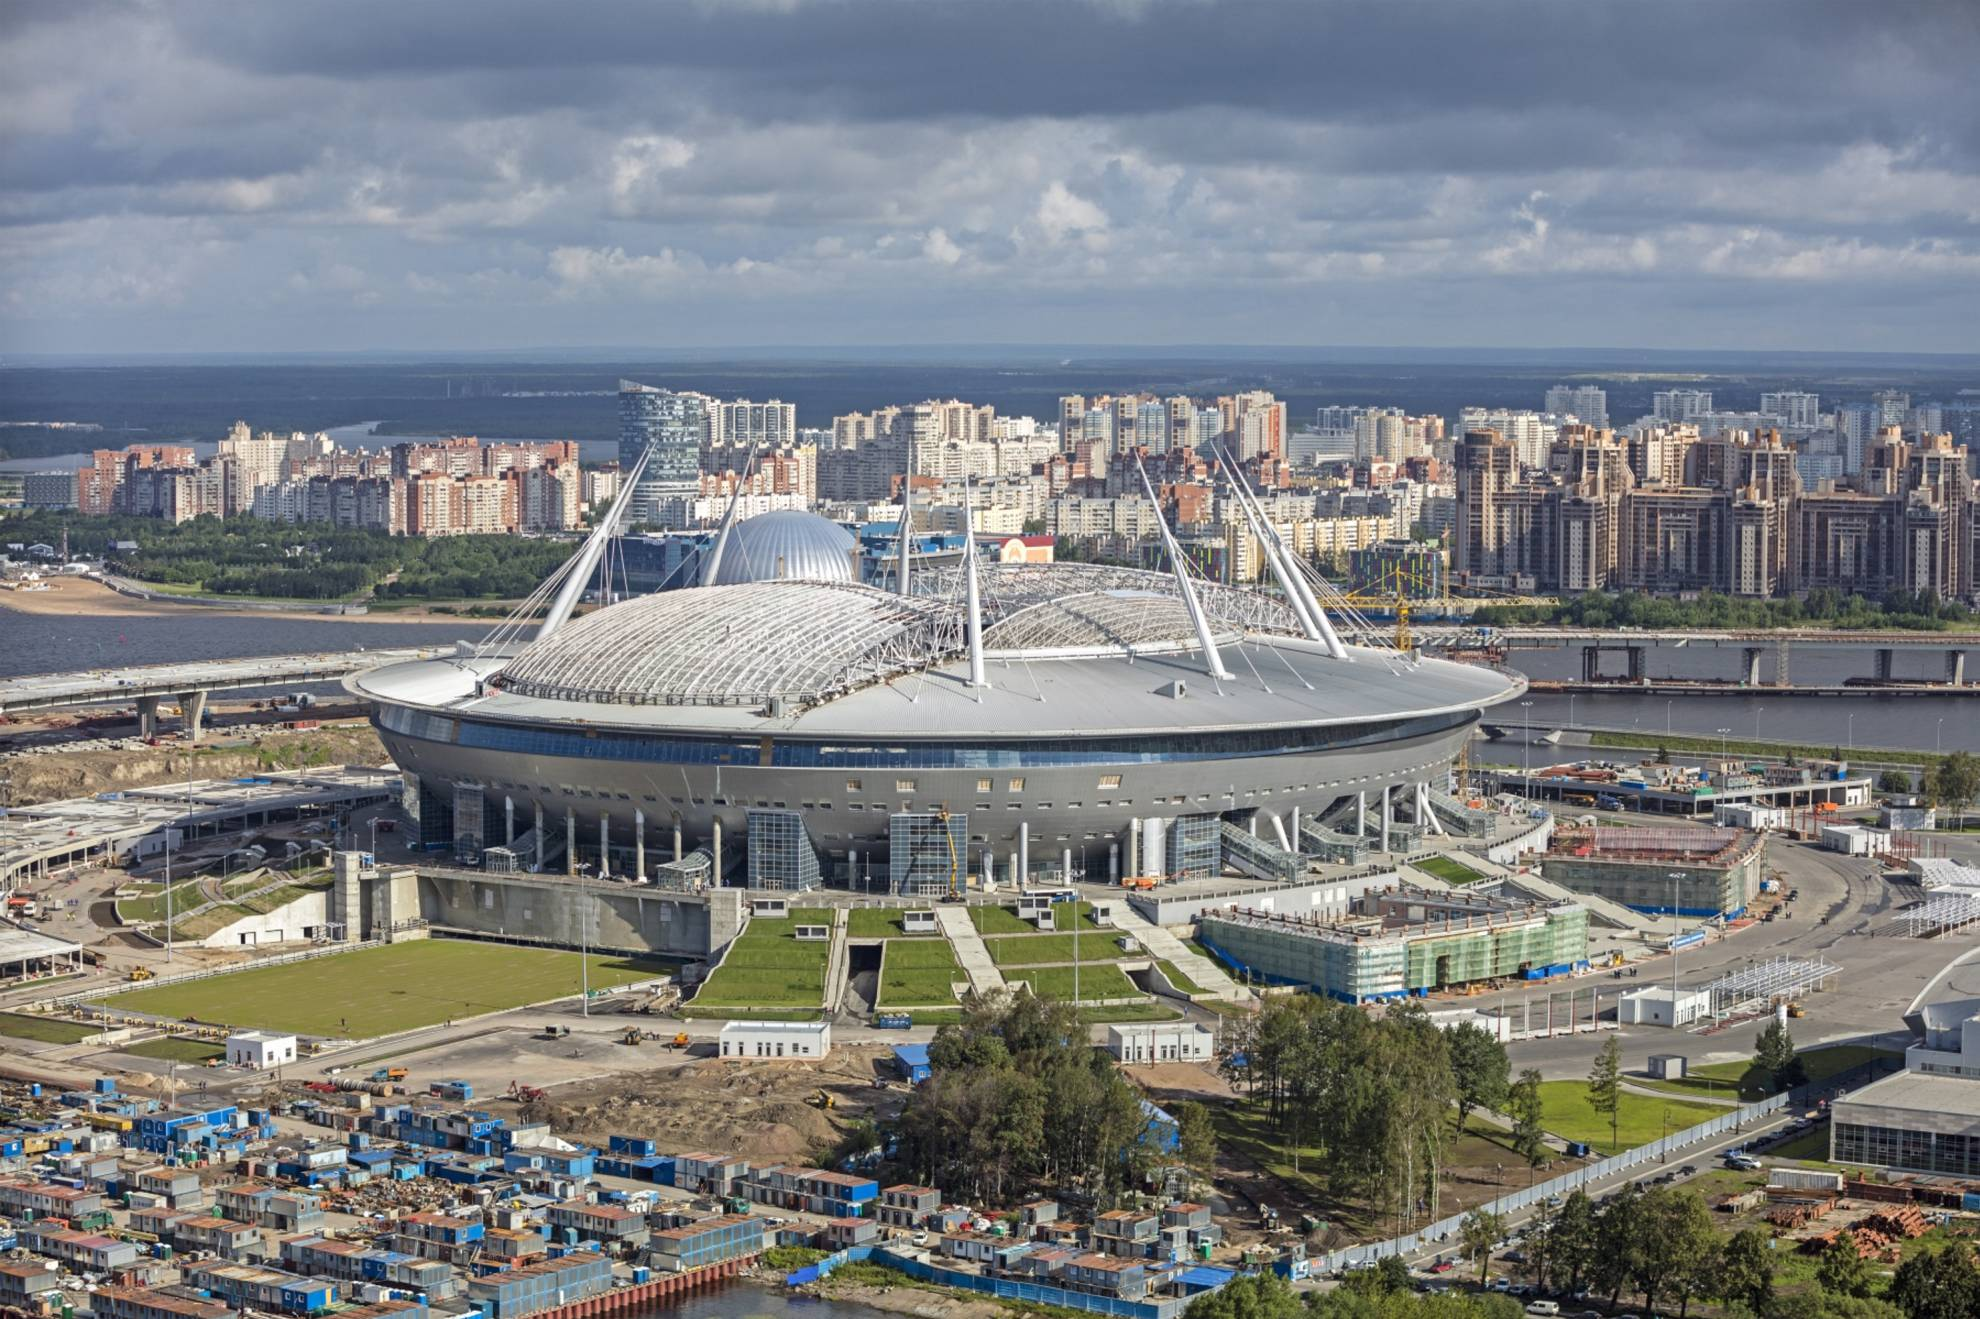 Estadio de San Petersburgo